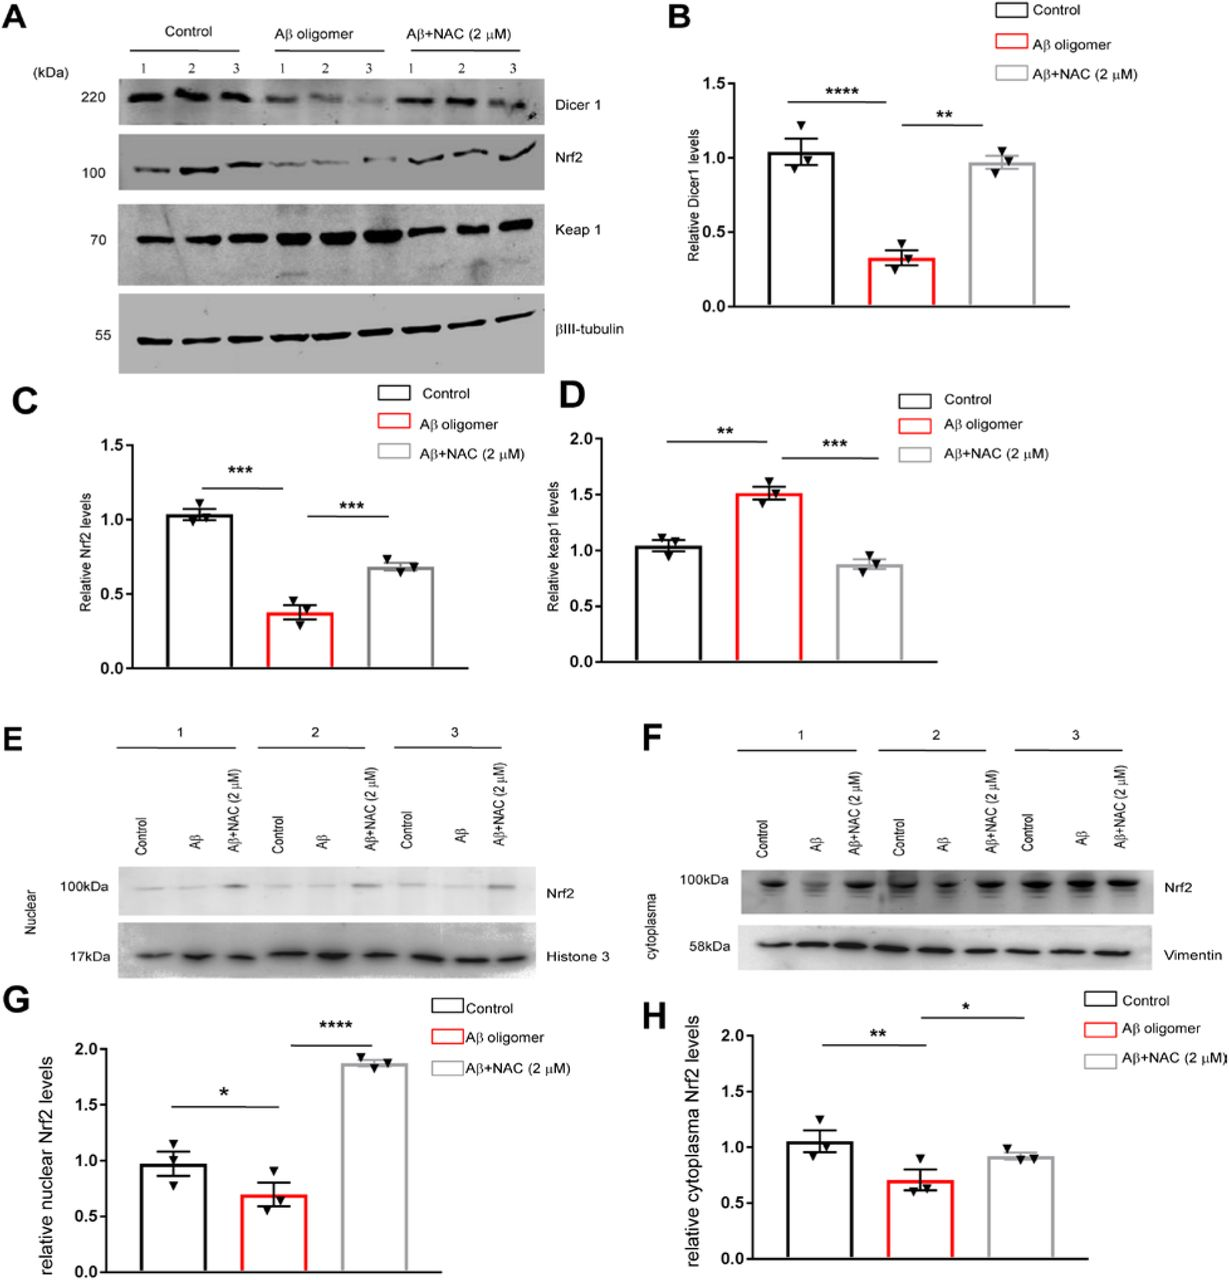 Dicer1 is reduced in APPswe/PSEN1dE9 mice and is regulated